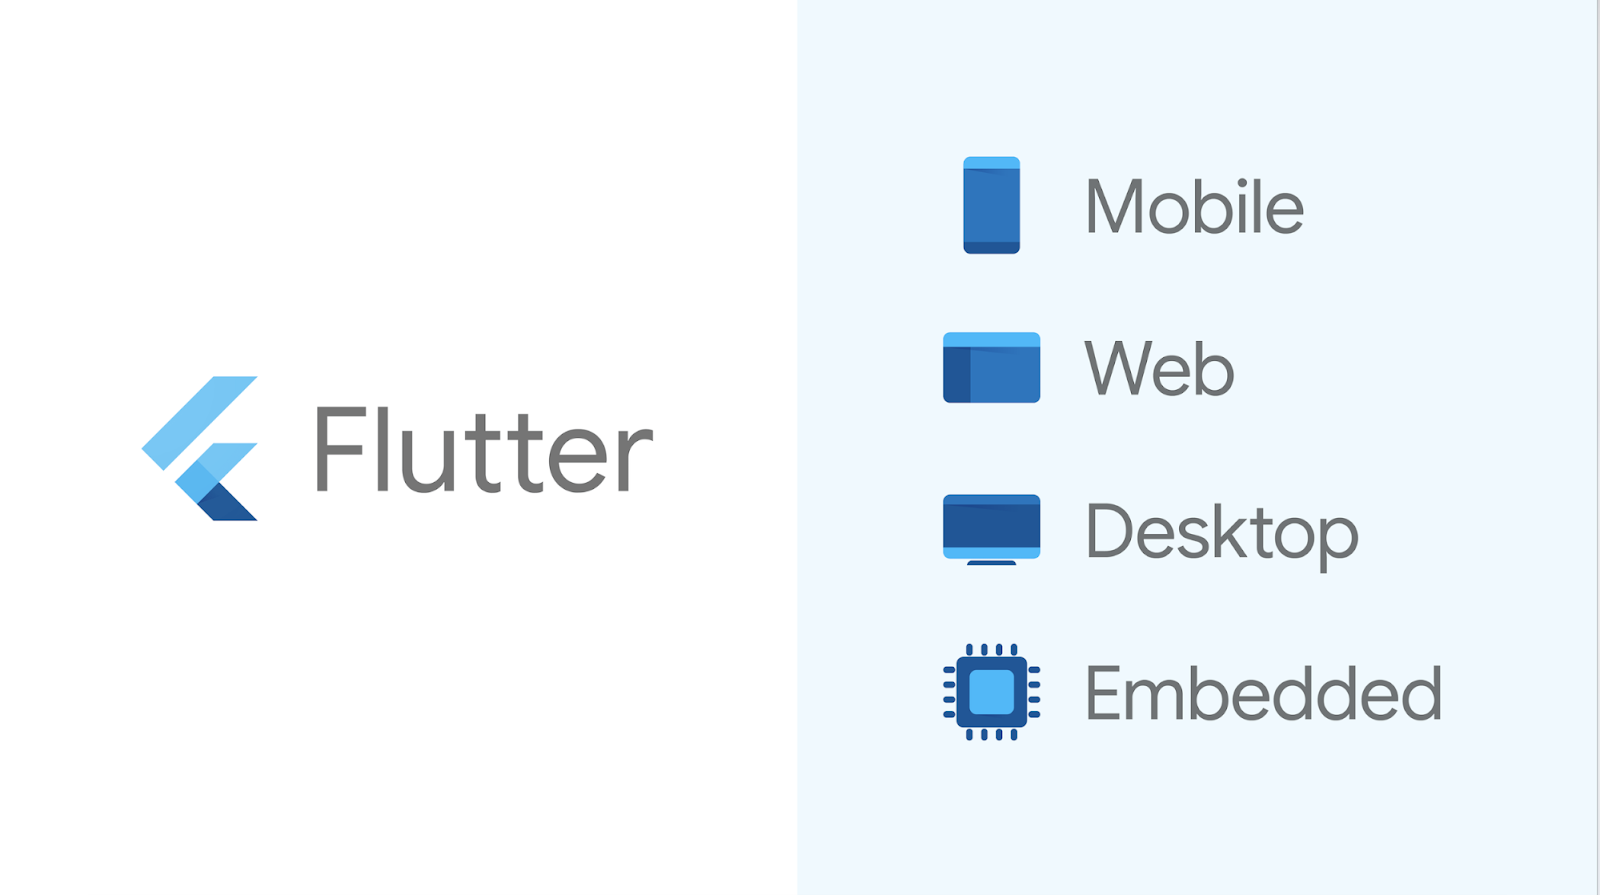 Google expands its Flutter UI framework to the rest of the